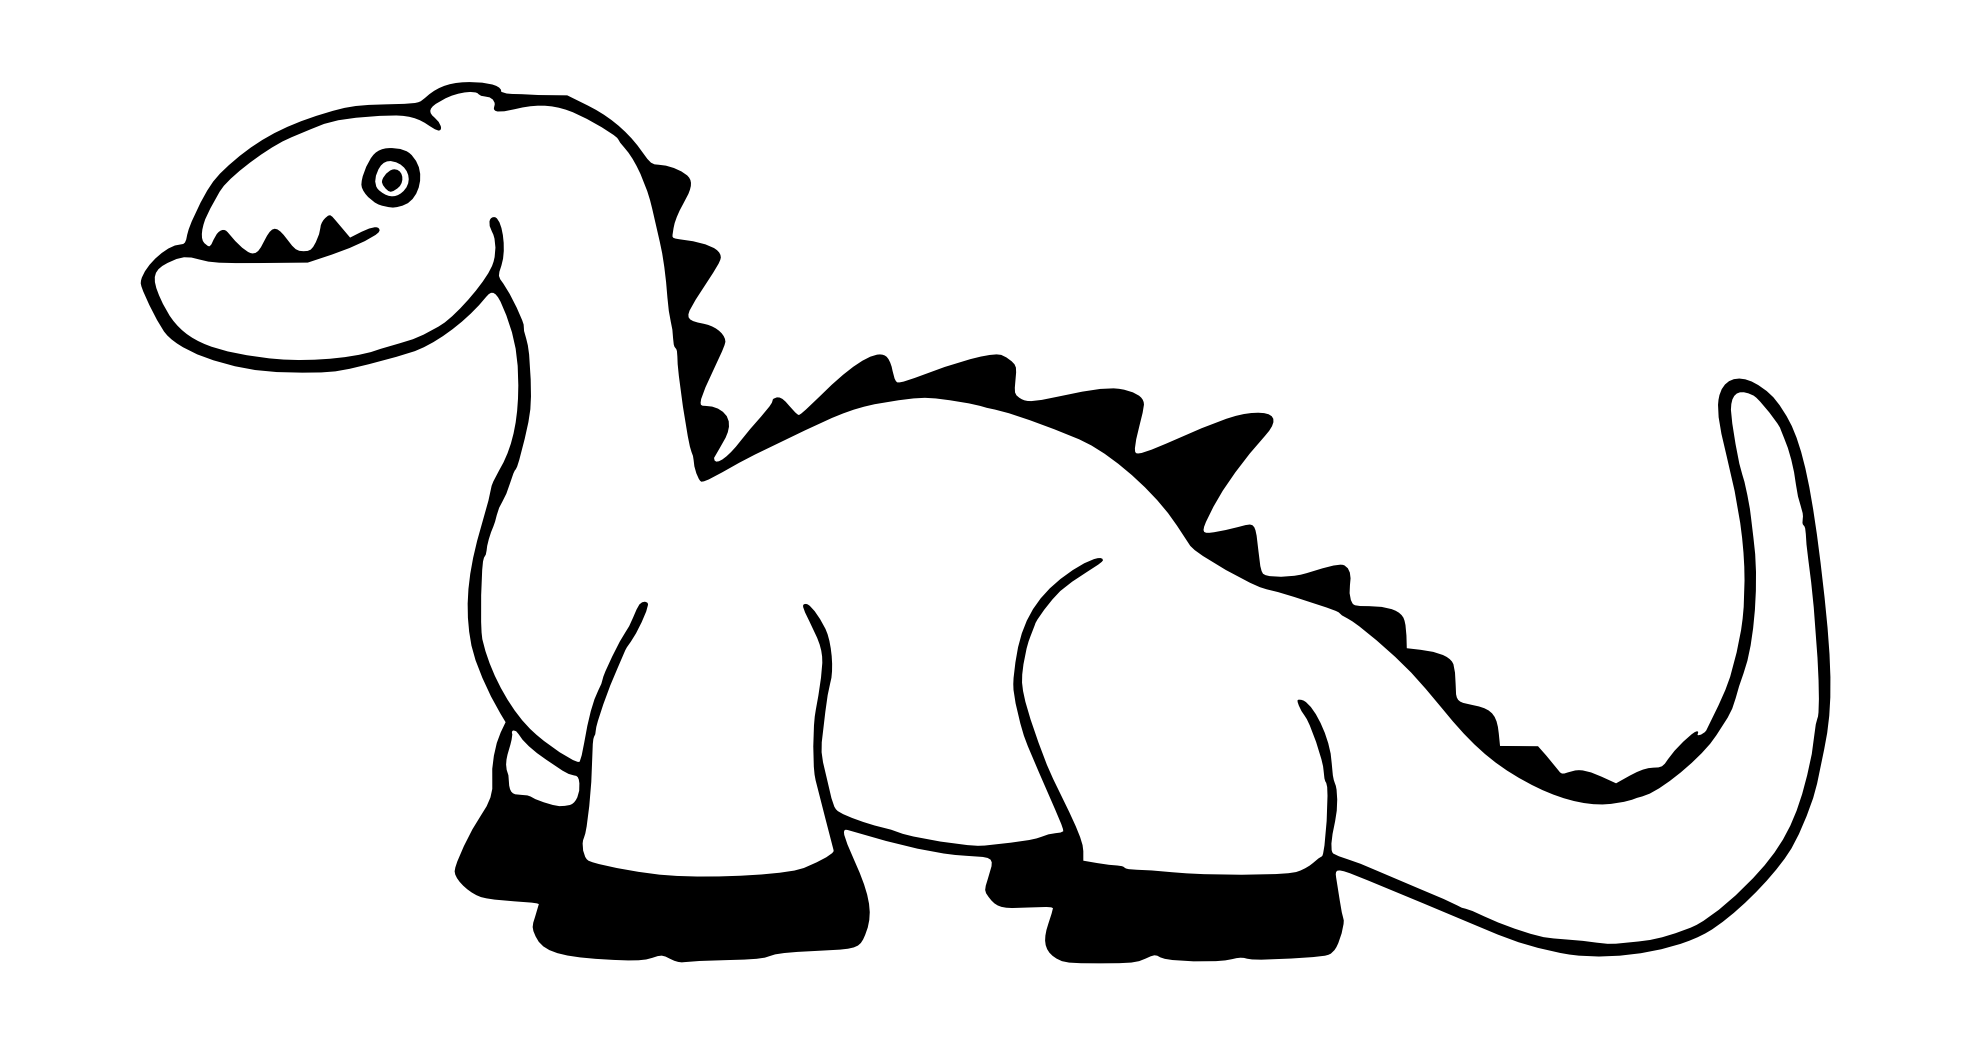 1979x1064 Stegosaurus Clipart Black And White